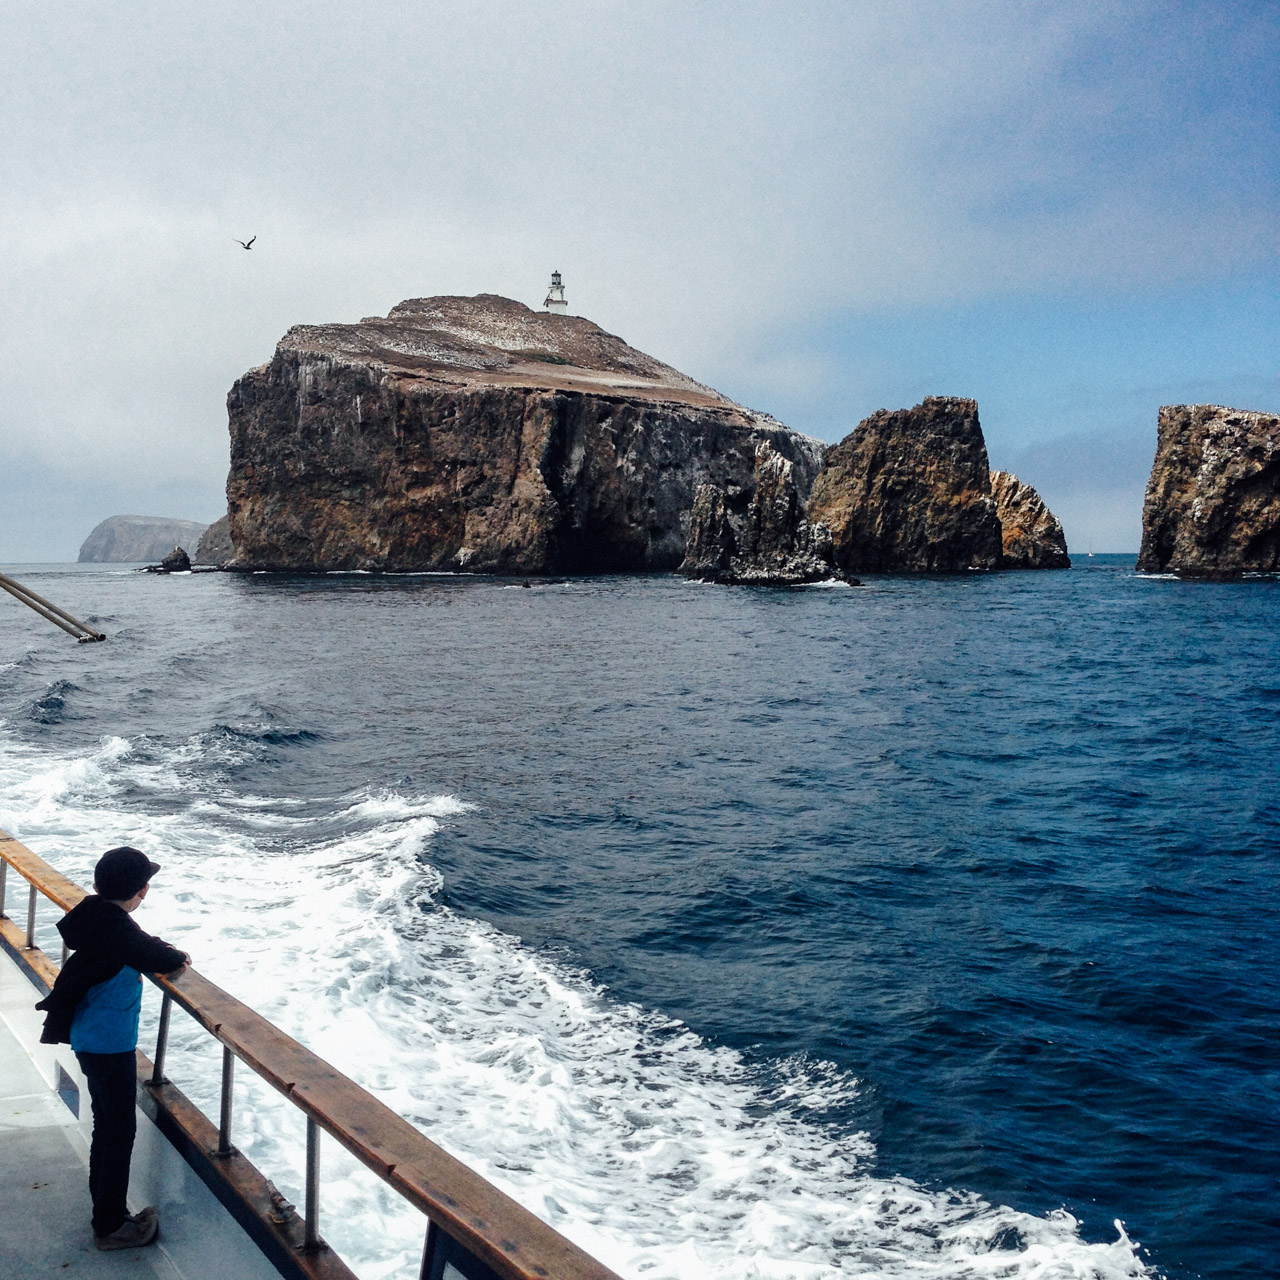 Approaching Anacapa Island from the south. Let's Photo Trip!